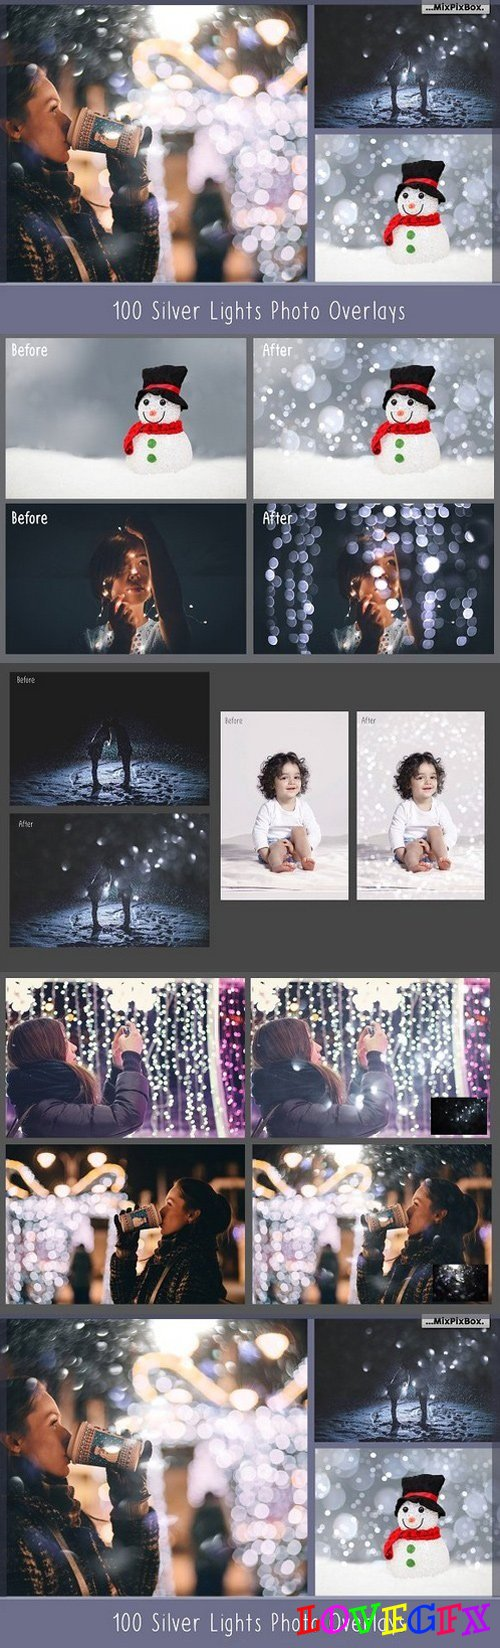 100 Silver Lights Photo Overlays 950339